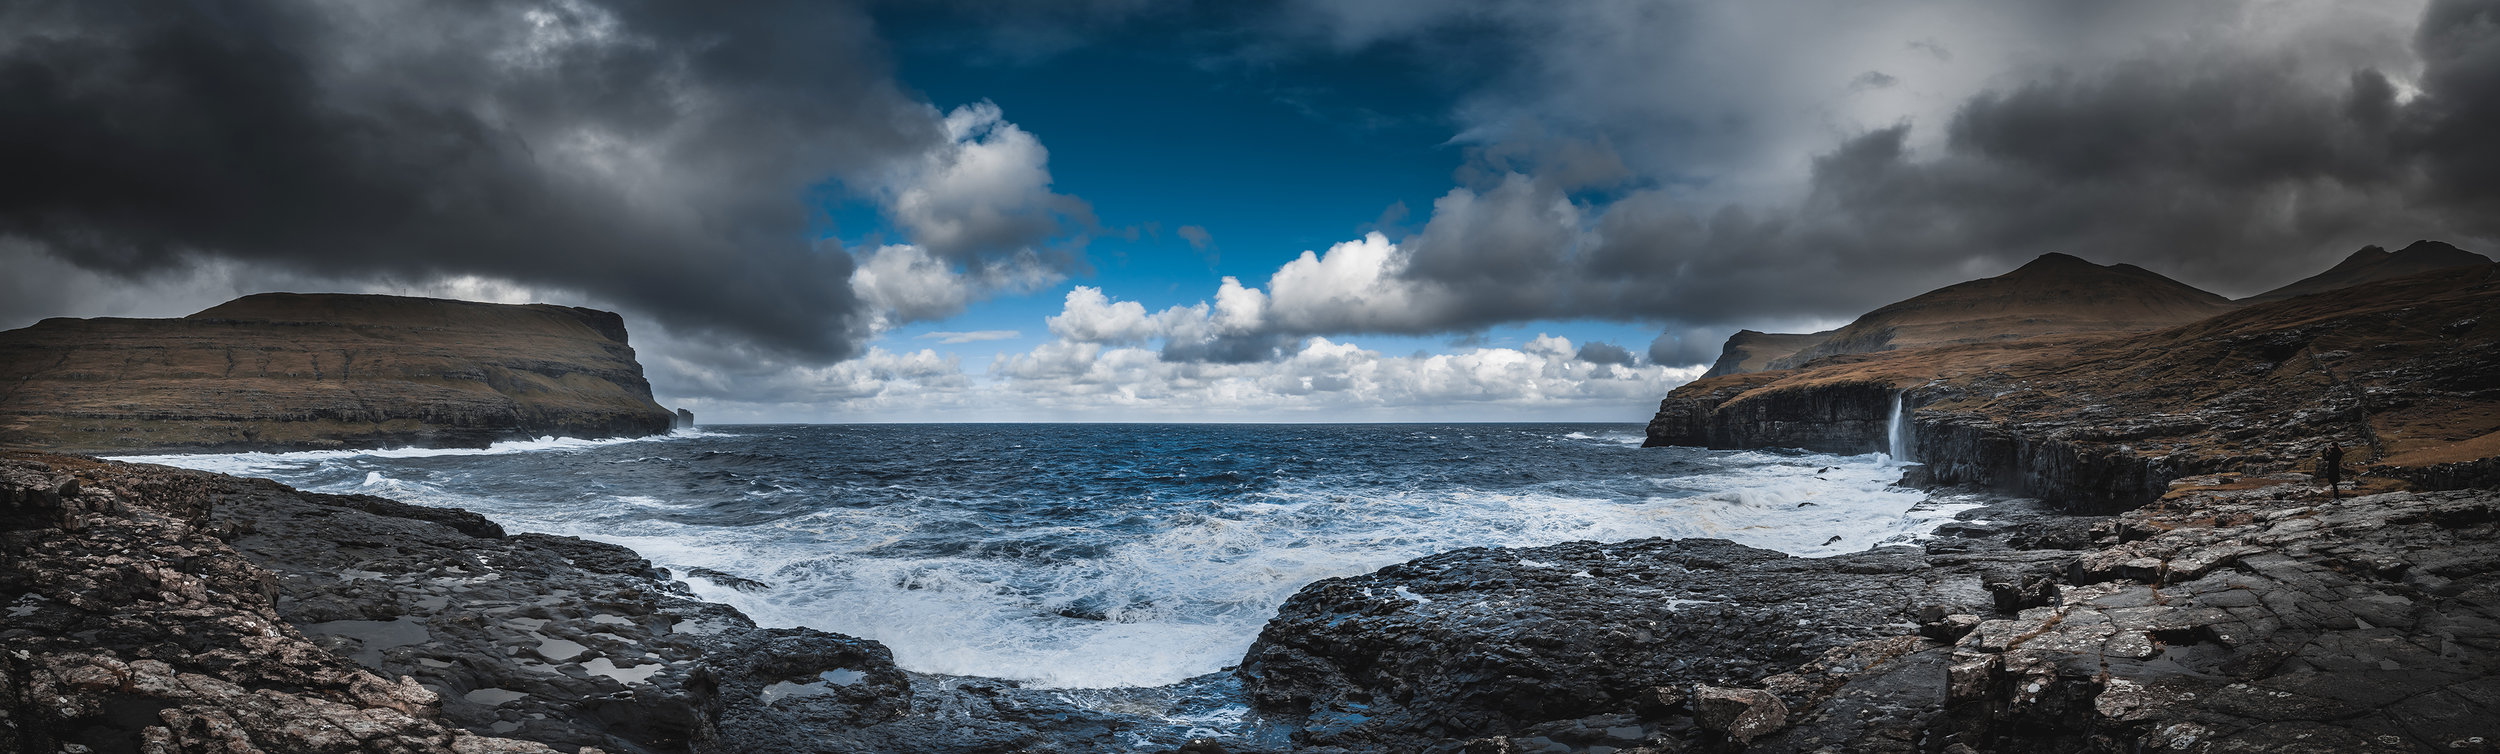 Panorama of the entire coastline just outside of Eiði.